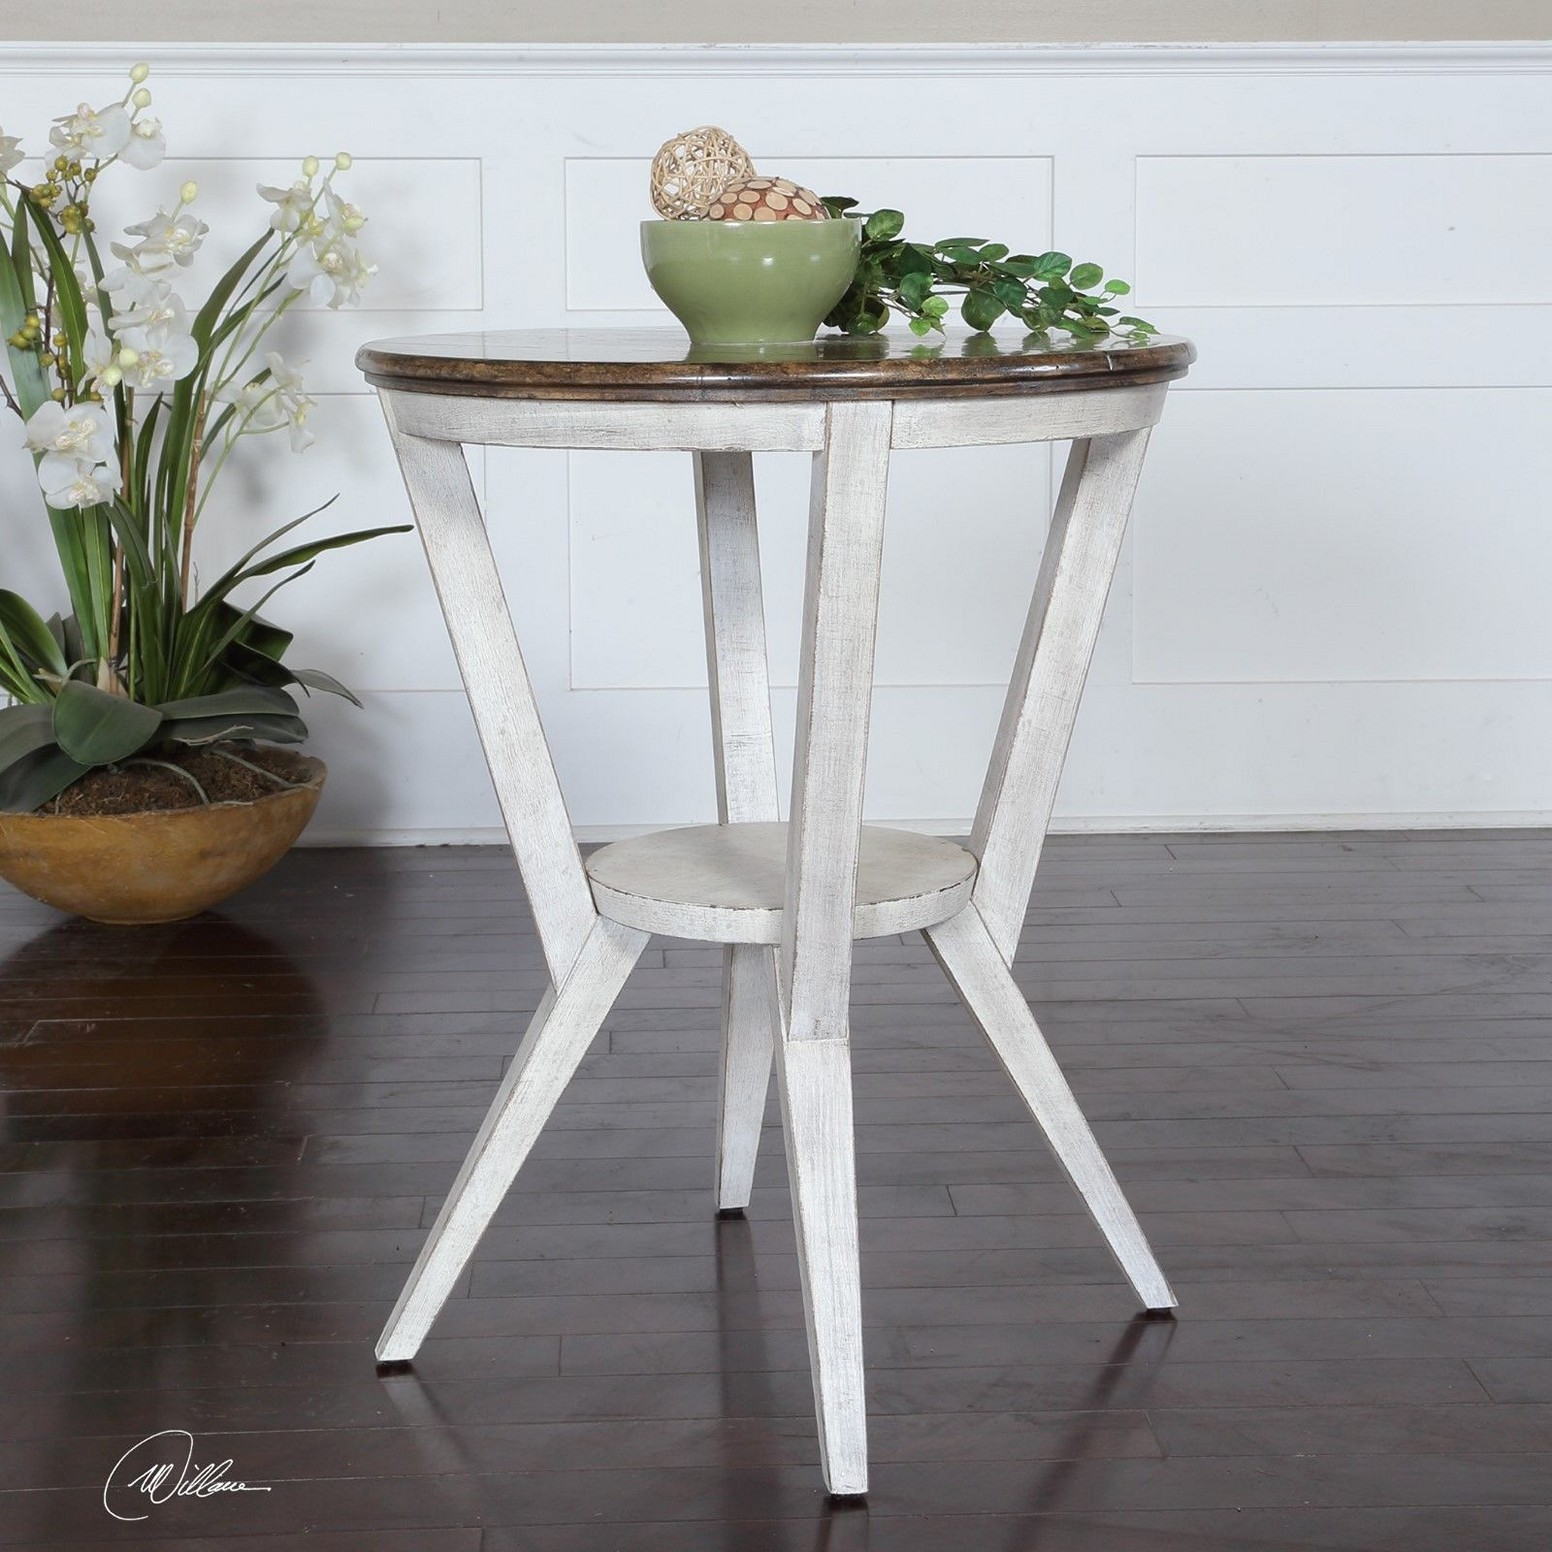 diy round end table ideas design wedding decorations for tables centerpieces covered litter box concrete legs iron accent wood slab bar country decor catalogs kmart kitchen sets